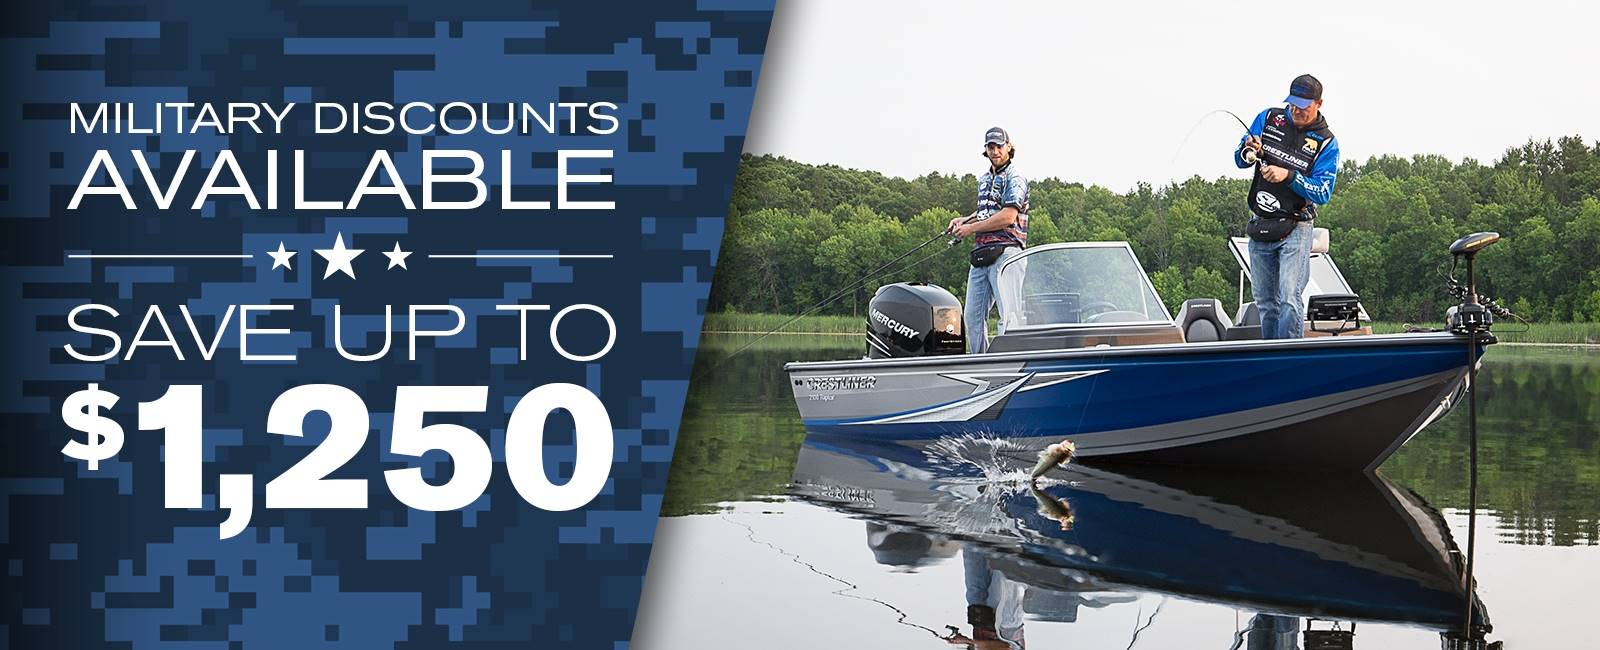 CRESTLINER MILITARY DISCOUNTS AVAILABLE - SAVE UP TO $1,250